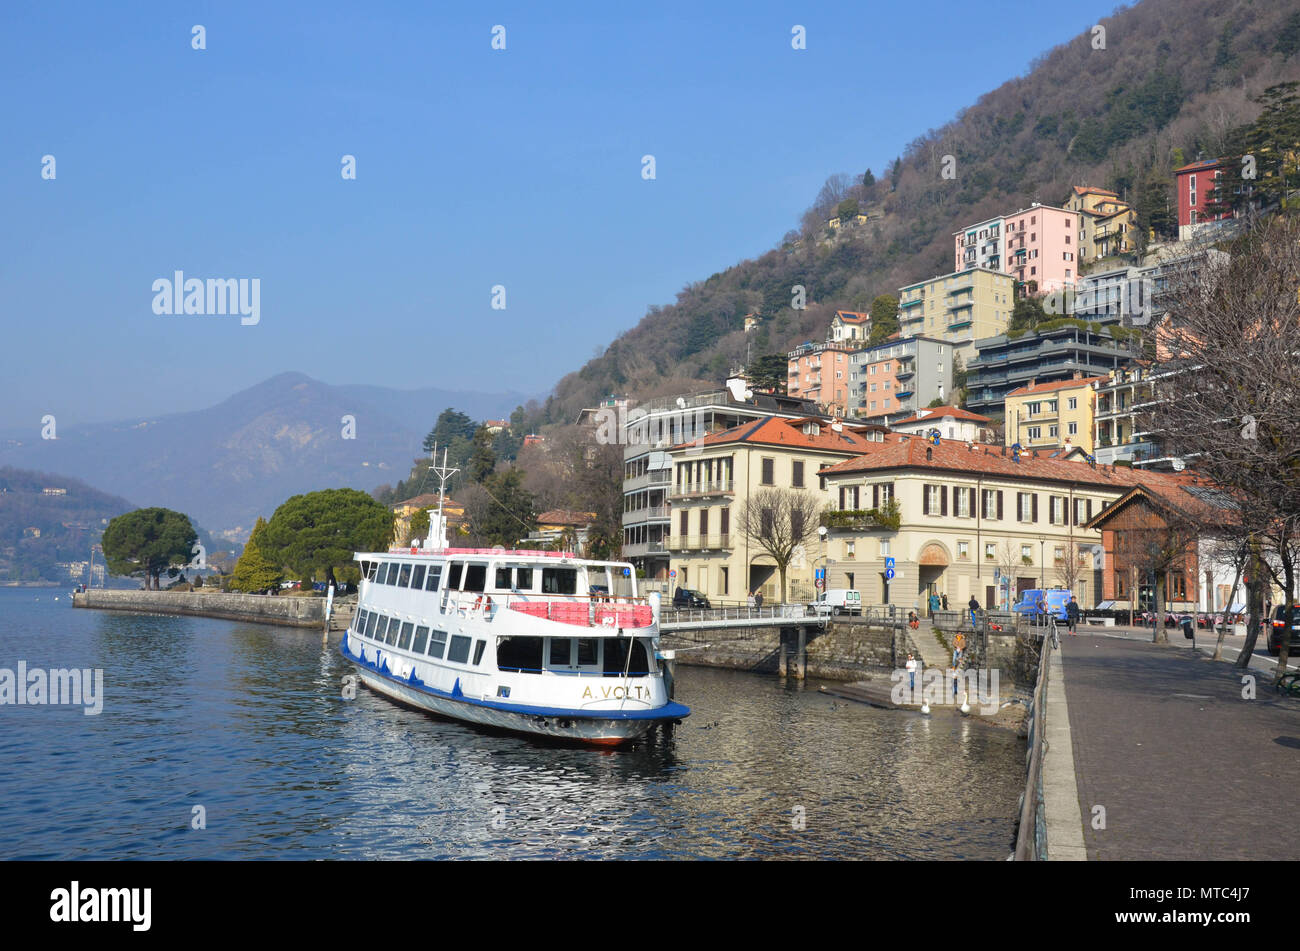 The waterfront of the city of Como (Lungo Lario Trieste), Lake Como, Lombardy, Italy, January 2018 - Stock Image